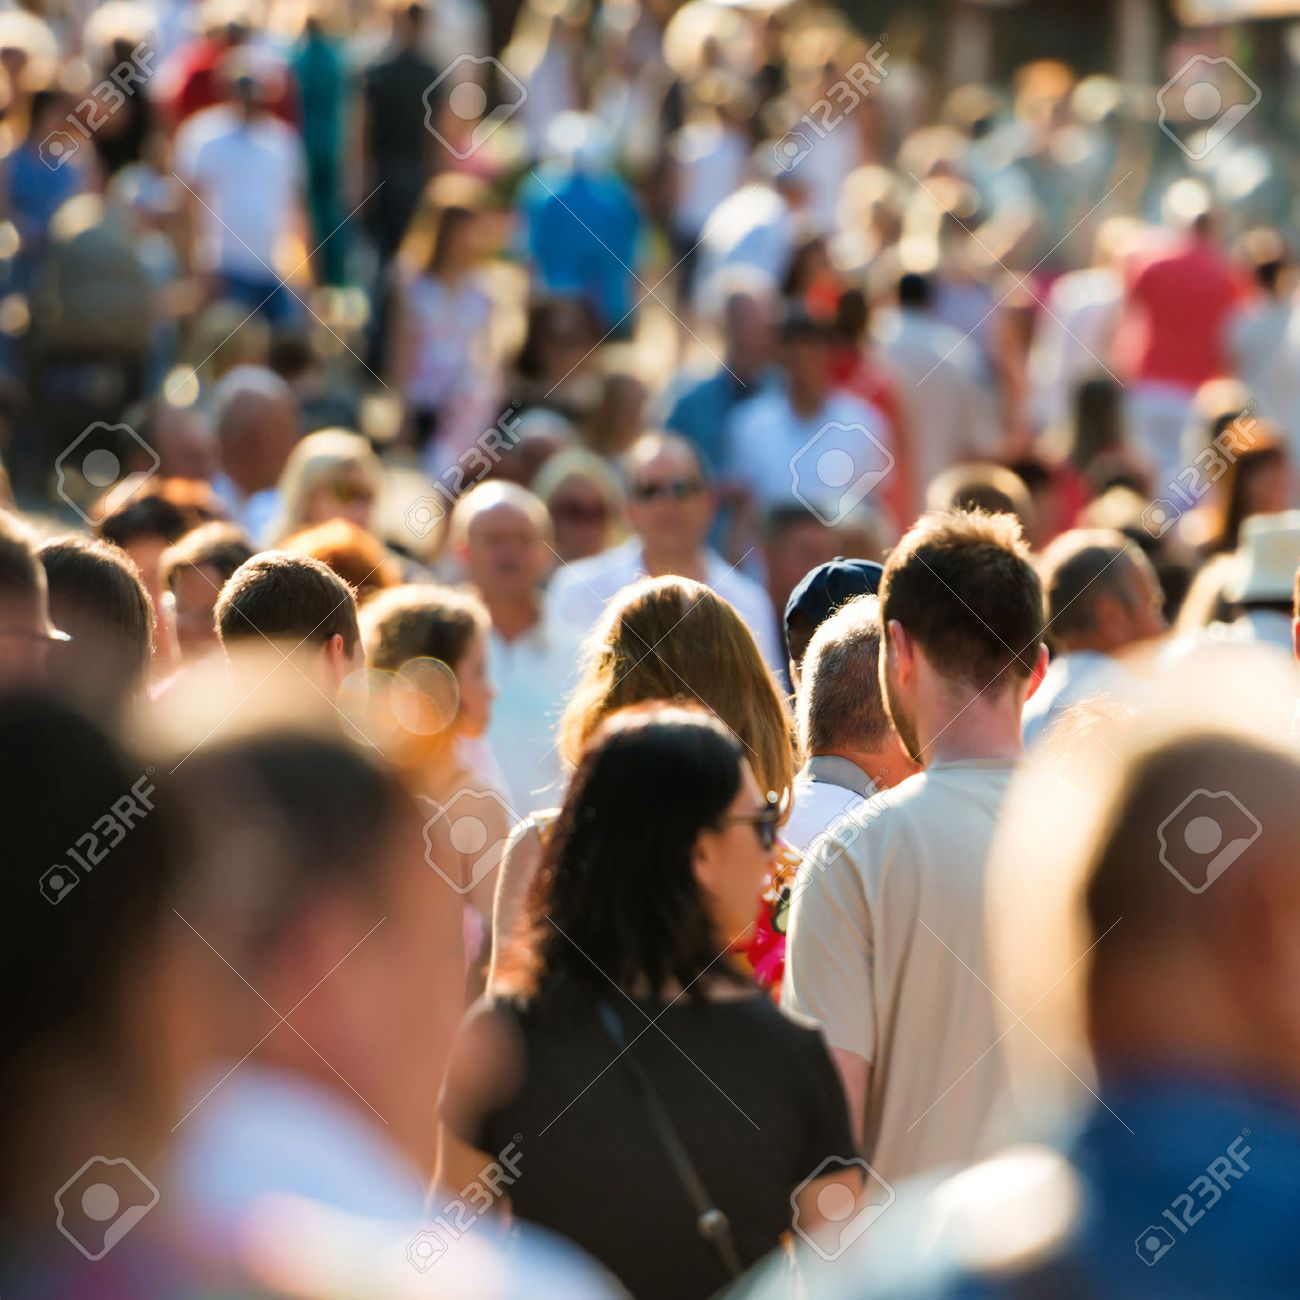 Crowd of people walking on the busy city street. Stock Photo - 50537352